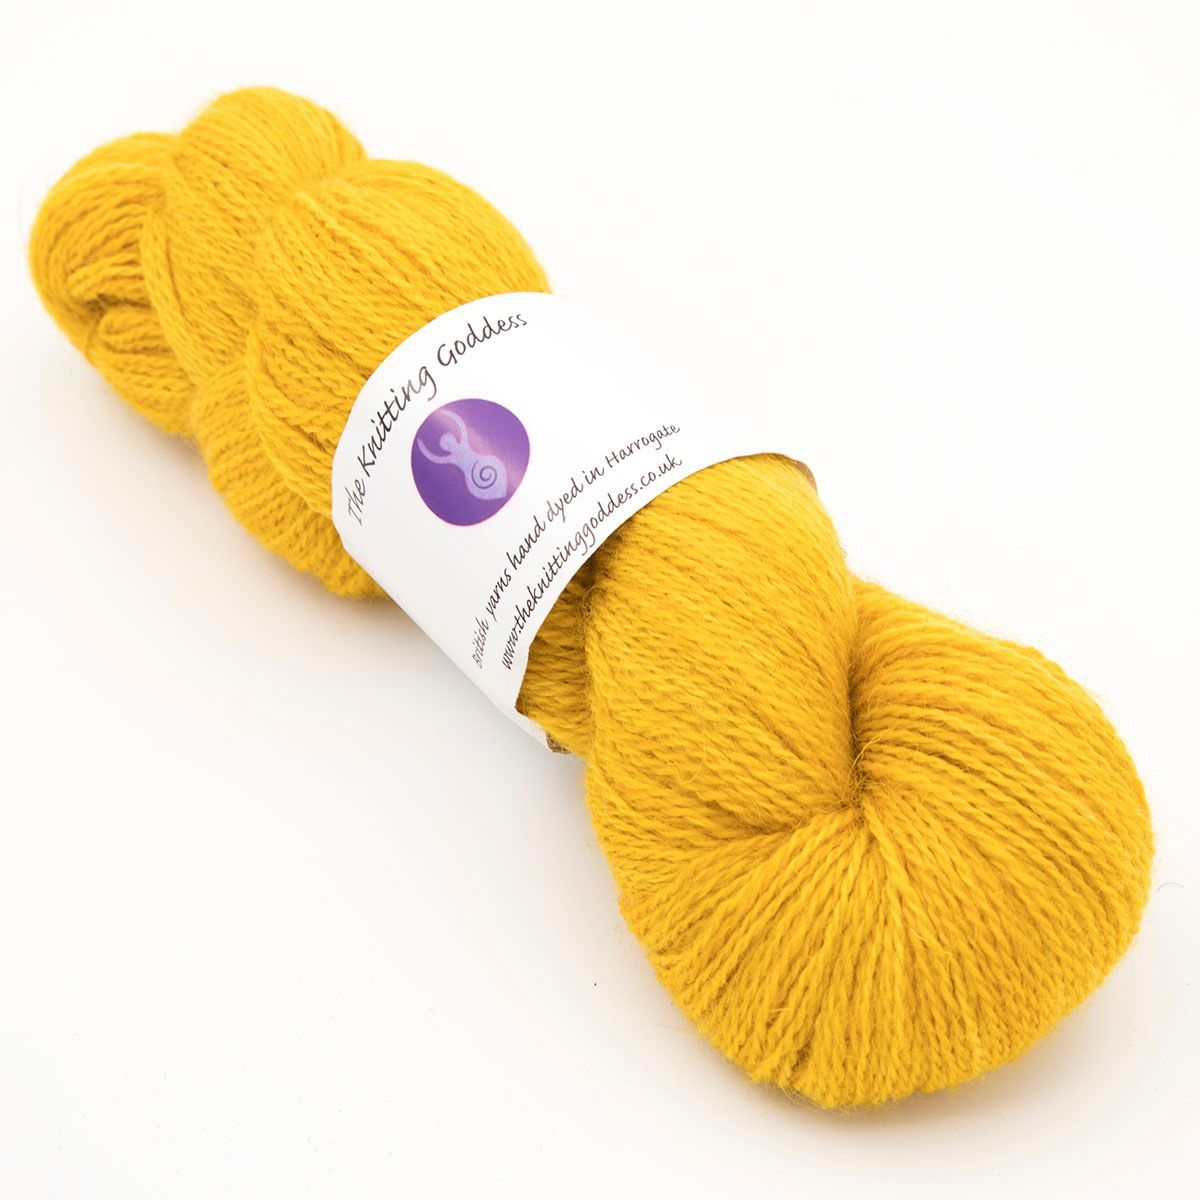 One Farm Yarn British wool